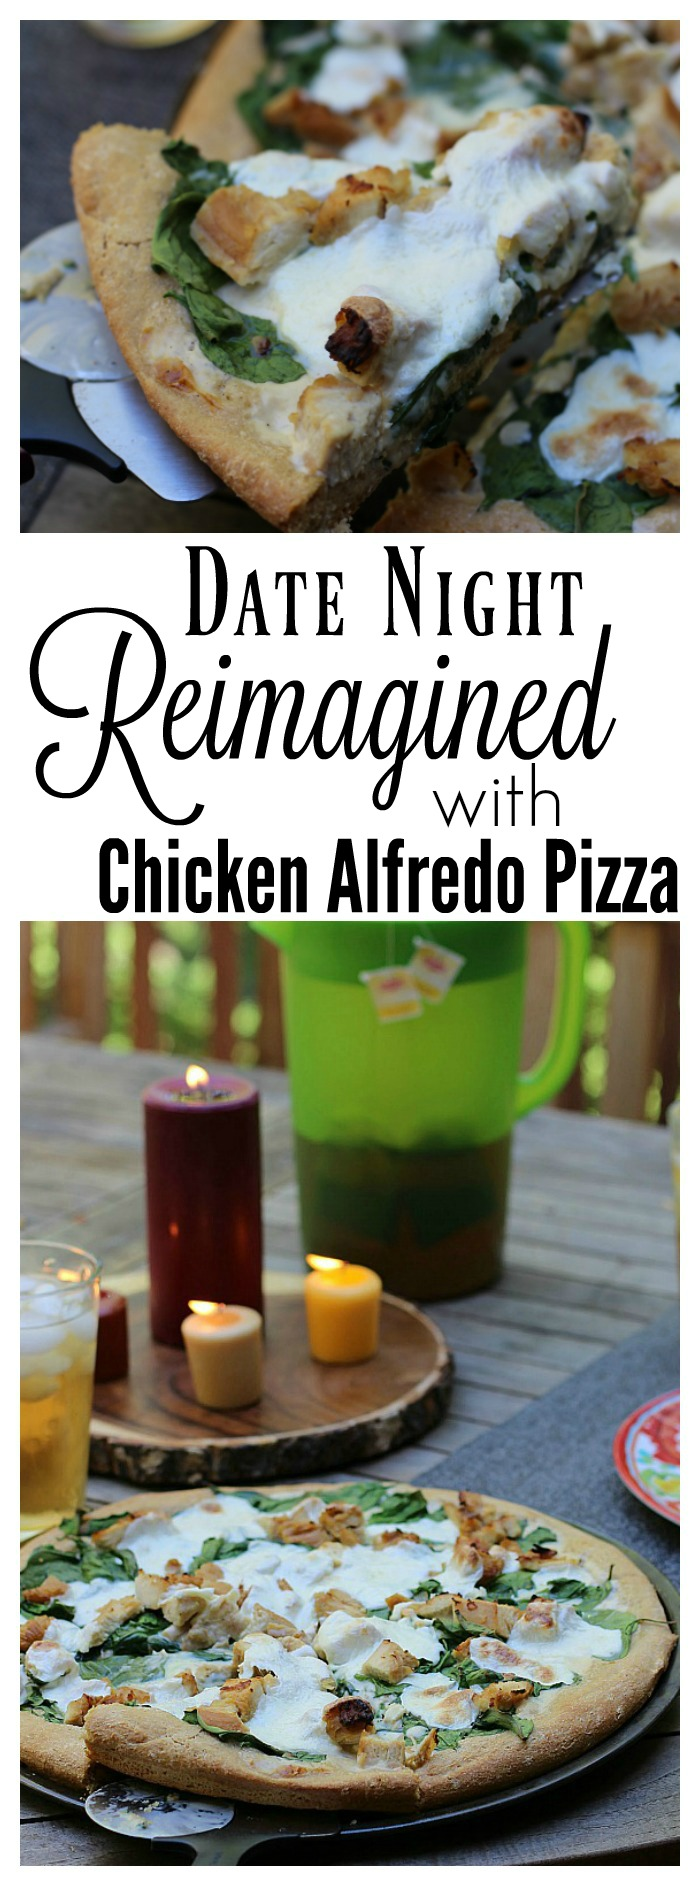 date-night-reimagined-with-chicken-alfredo-pizza